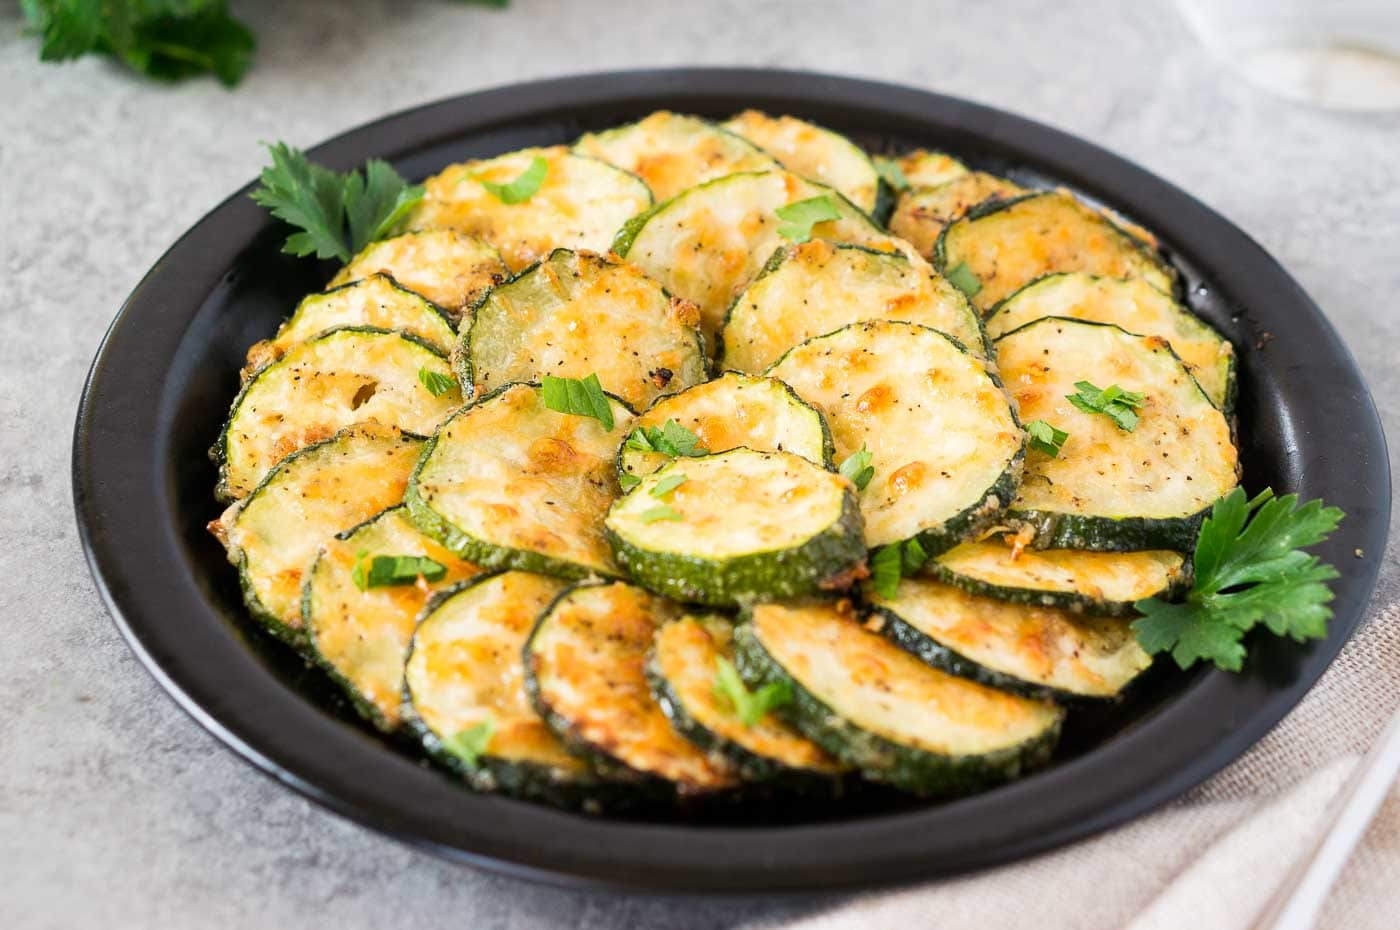 roasted zucchini slices on a plate